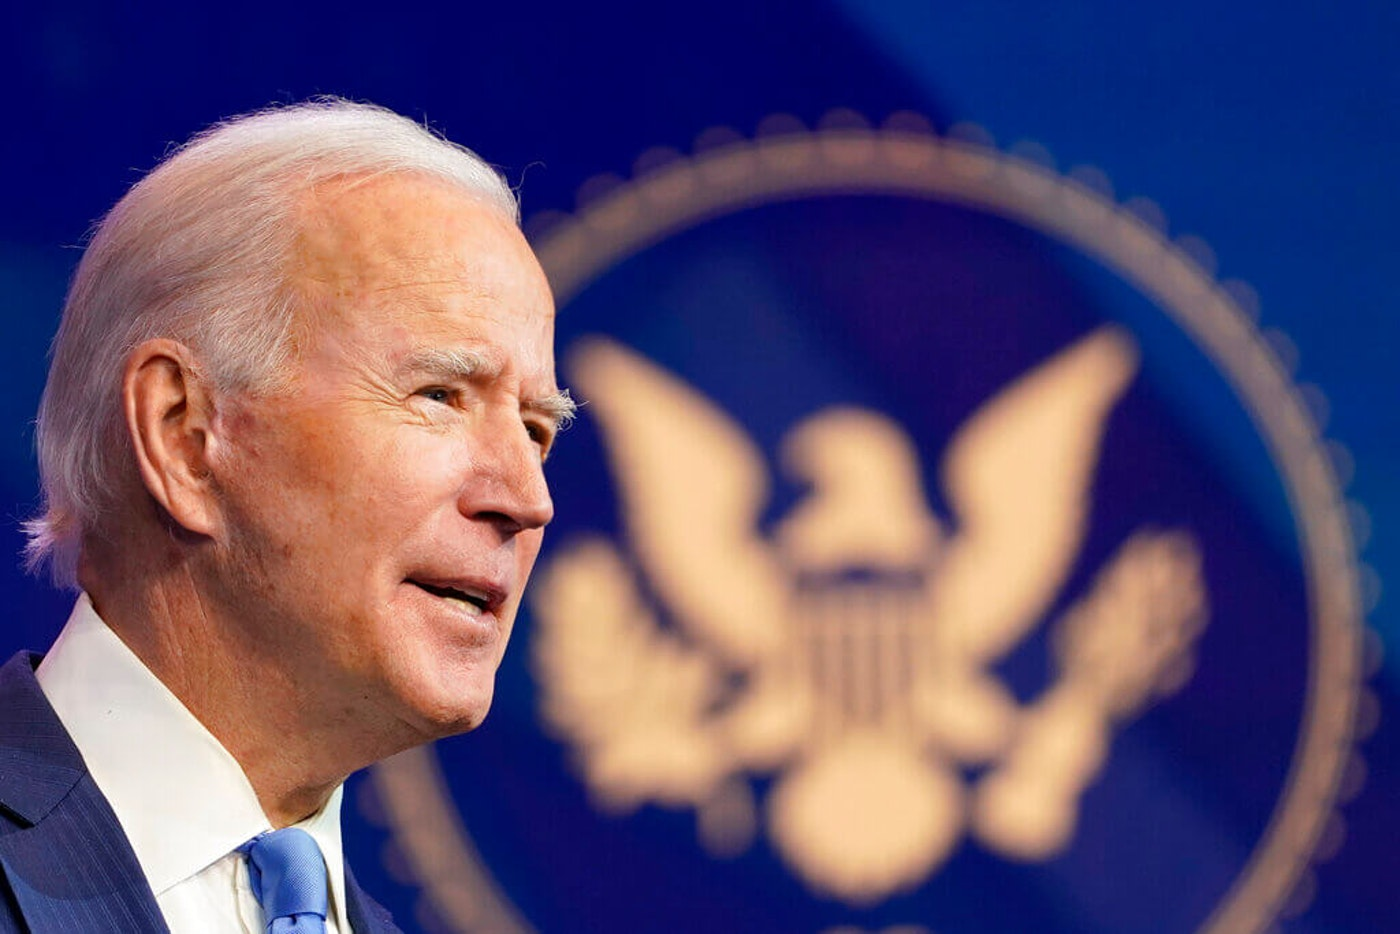 President-elect Joe Biden will claim his Electoral College victory today as state electors meet around the country.